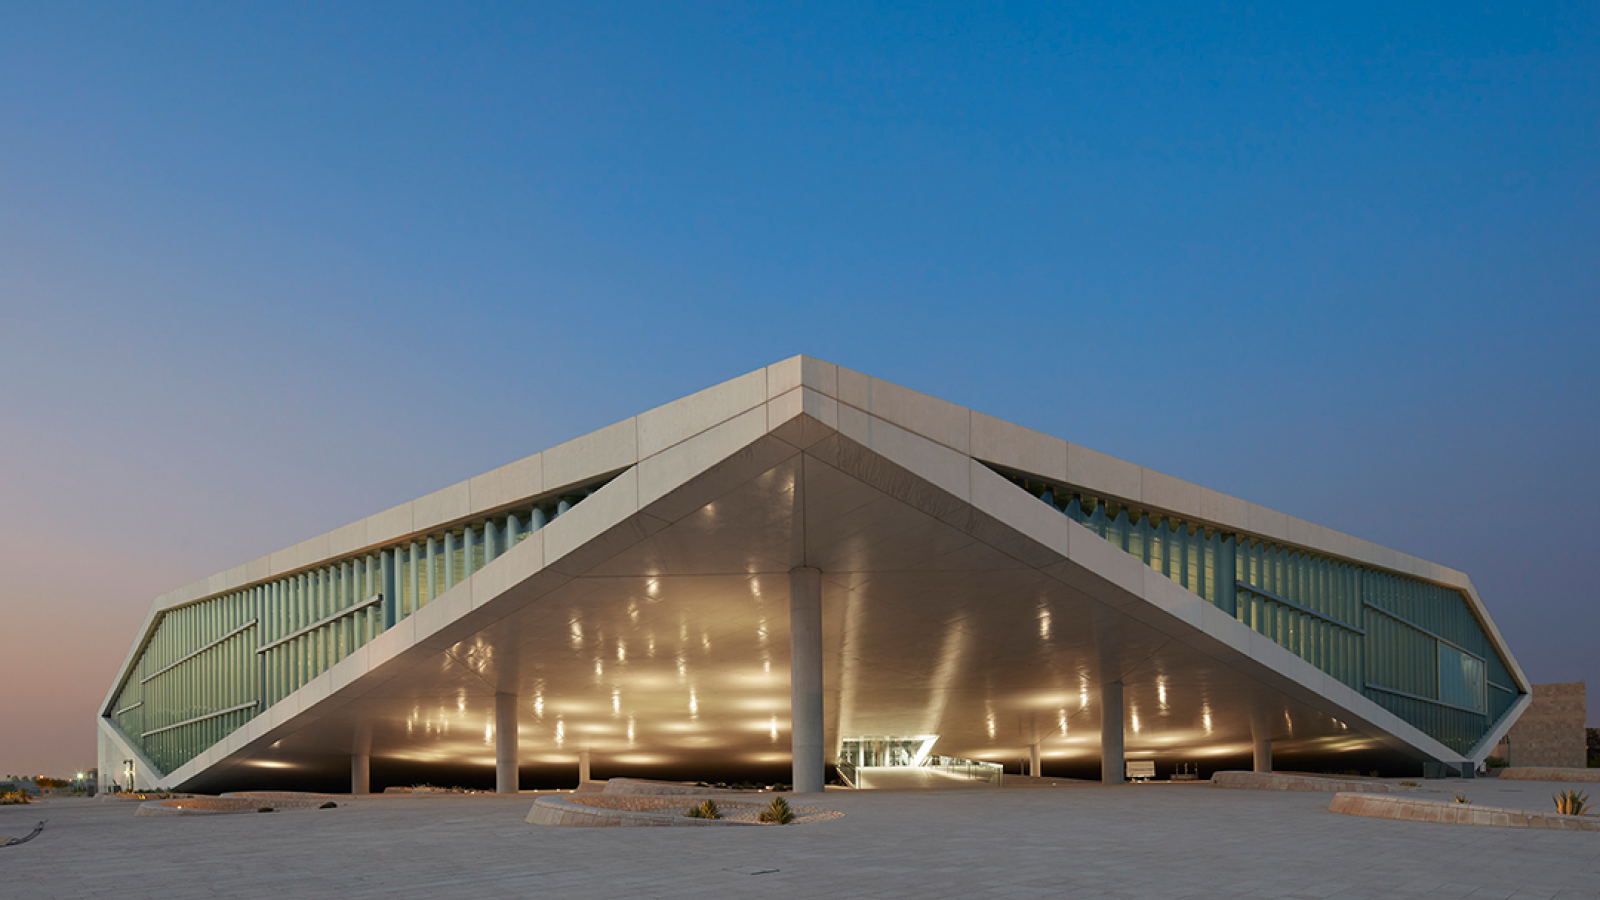 Five great spots to study in Qatar during the exam season